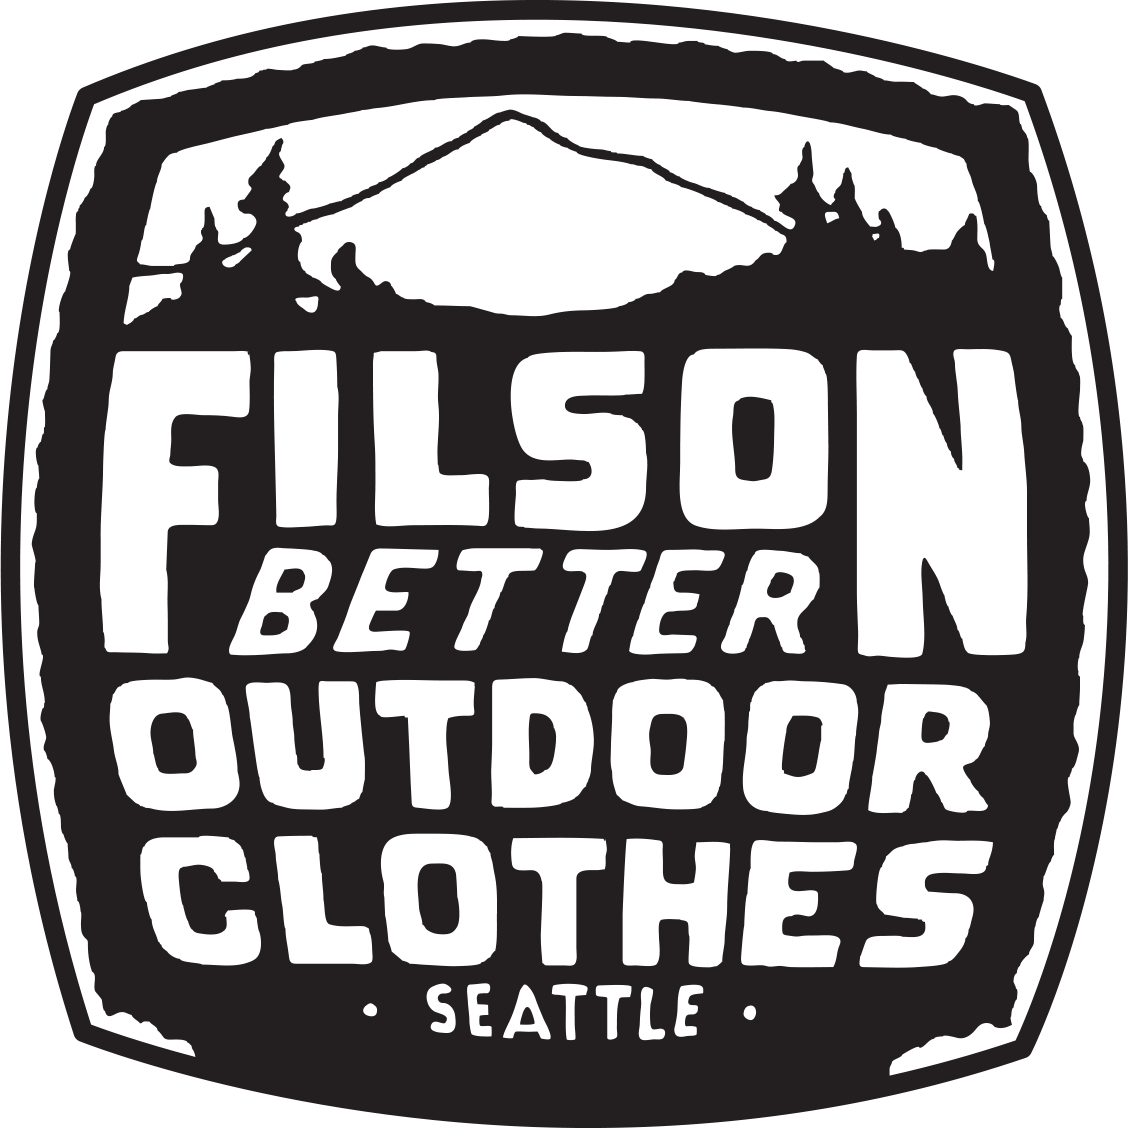 Filson_BetterOutdoorClothes_Logo.png